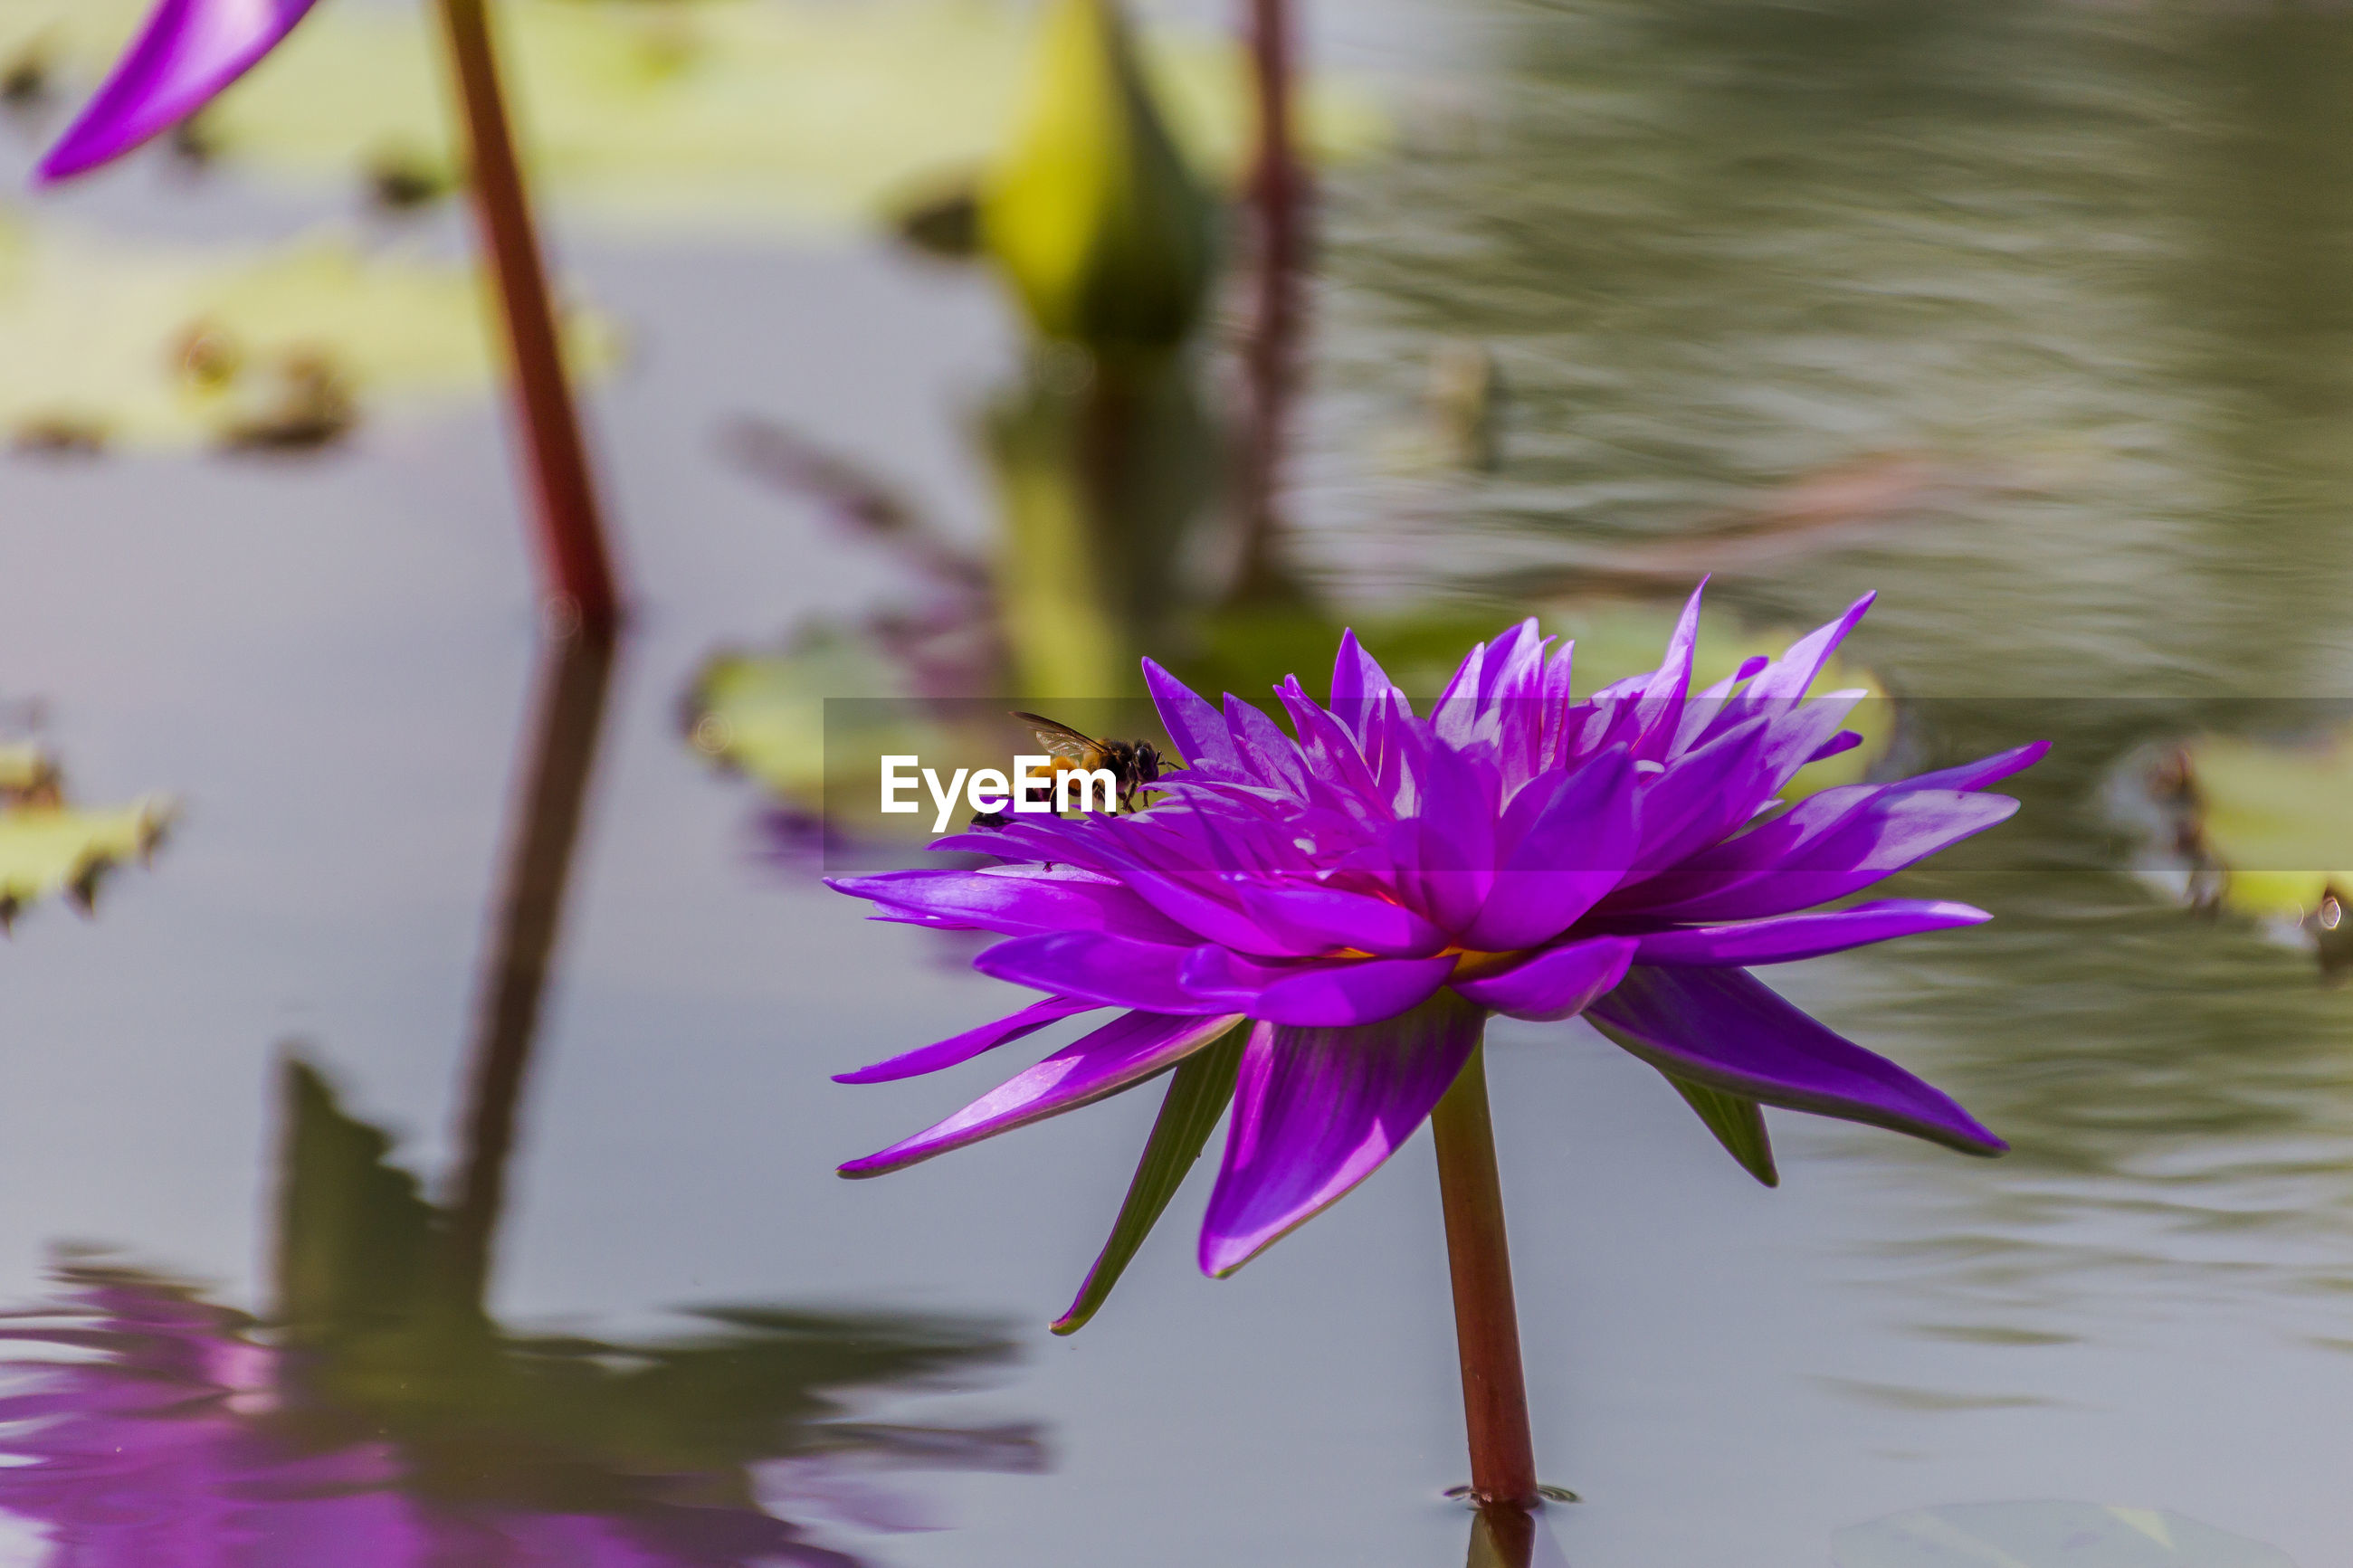 Insect pollinating on purple flower in pond